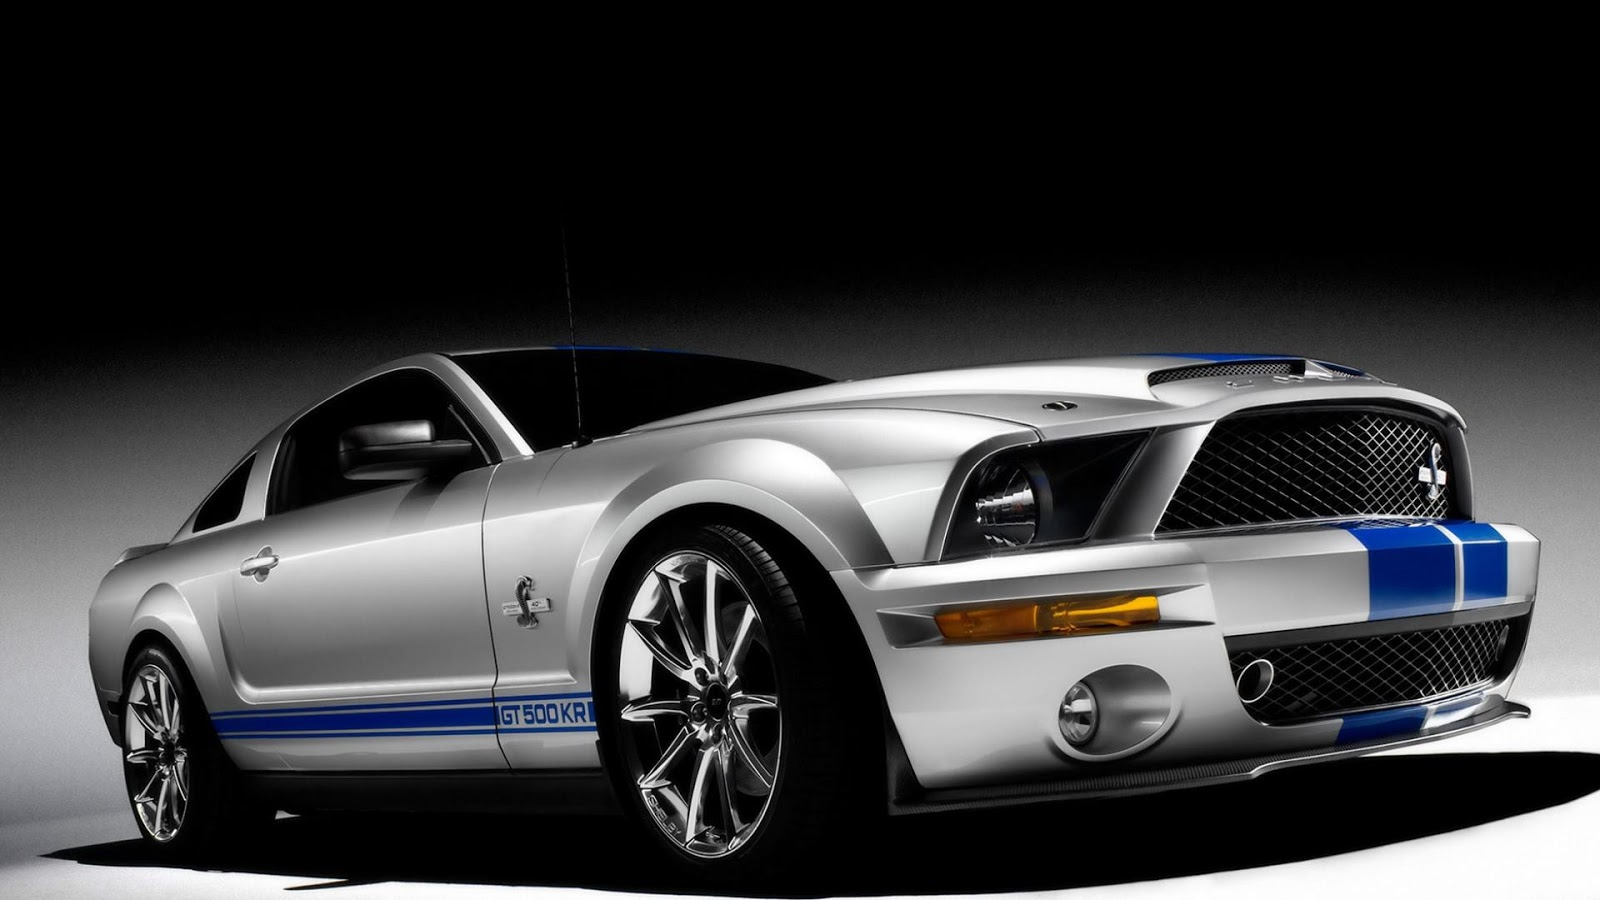 Free 3D Wallpapers Download: Hd Wallpapers Cars- 20 Wallpaper